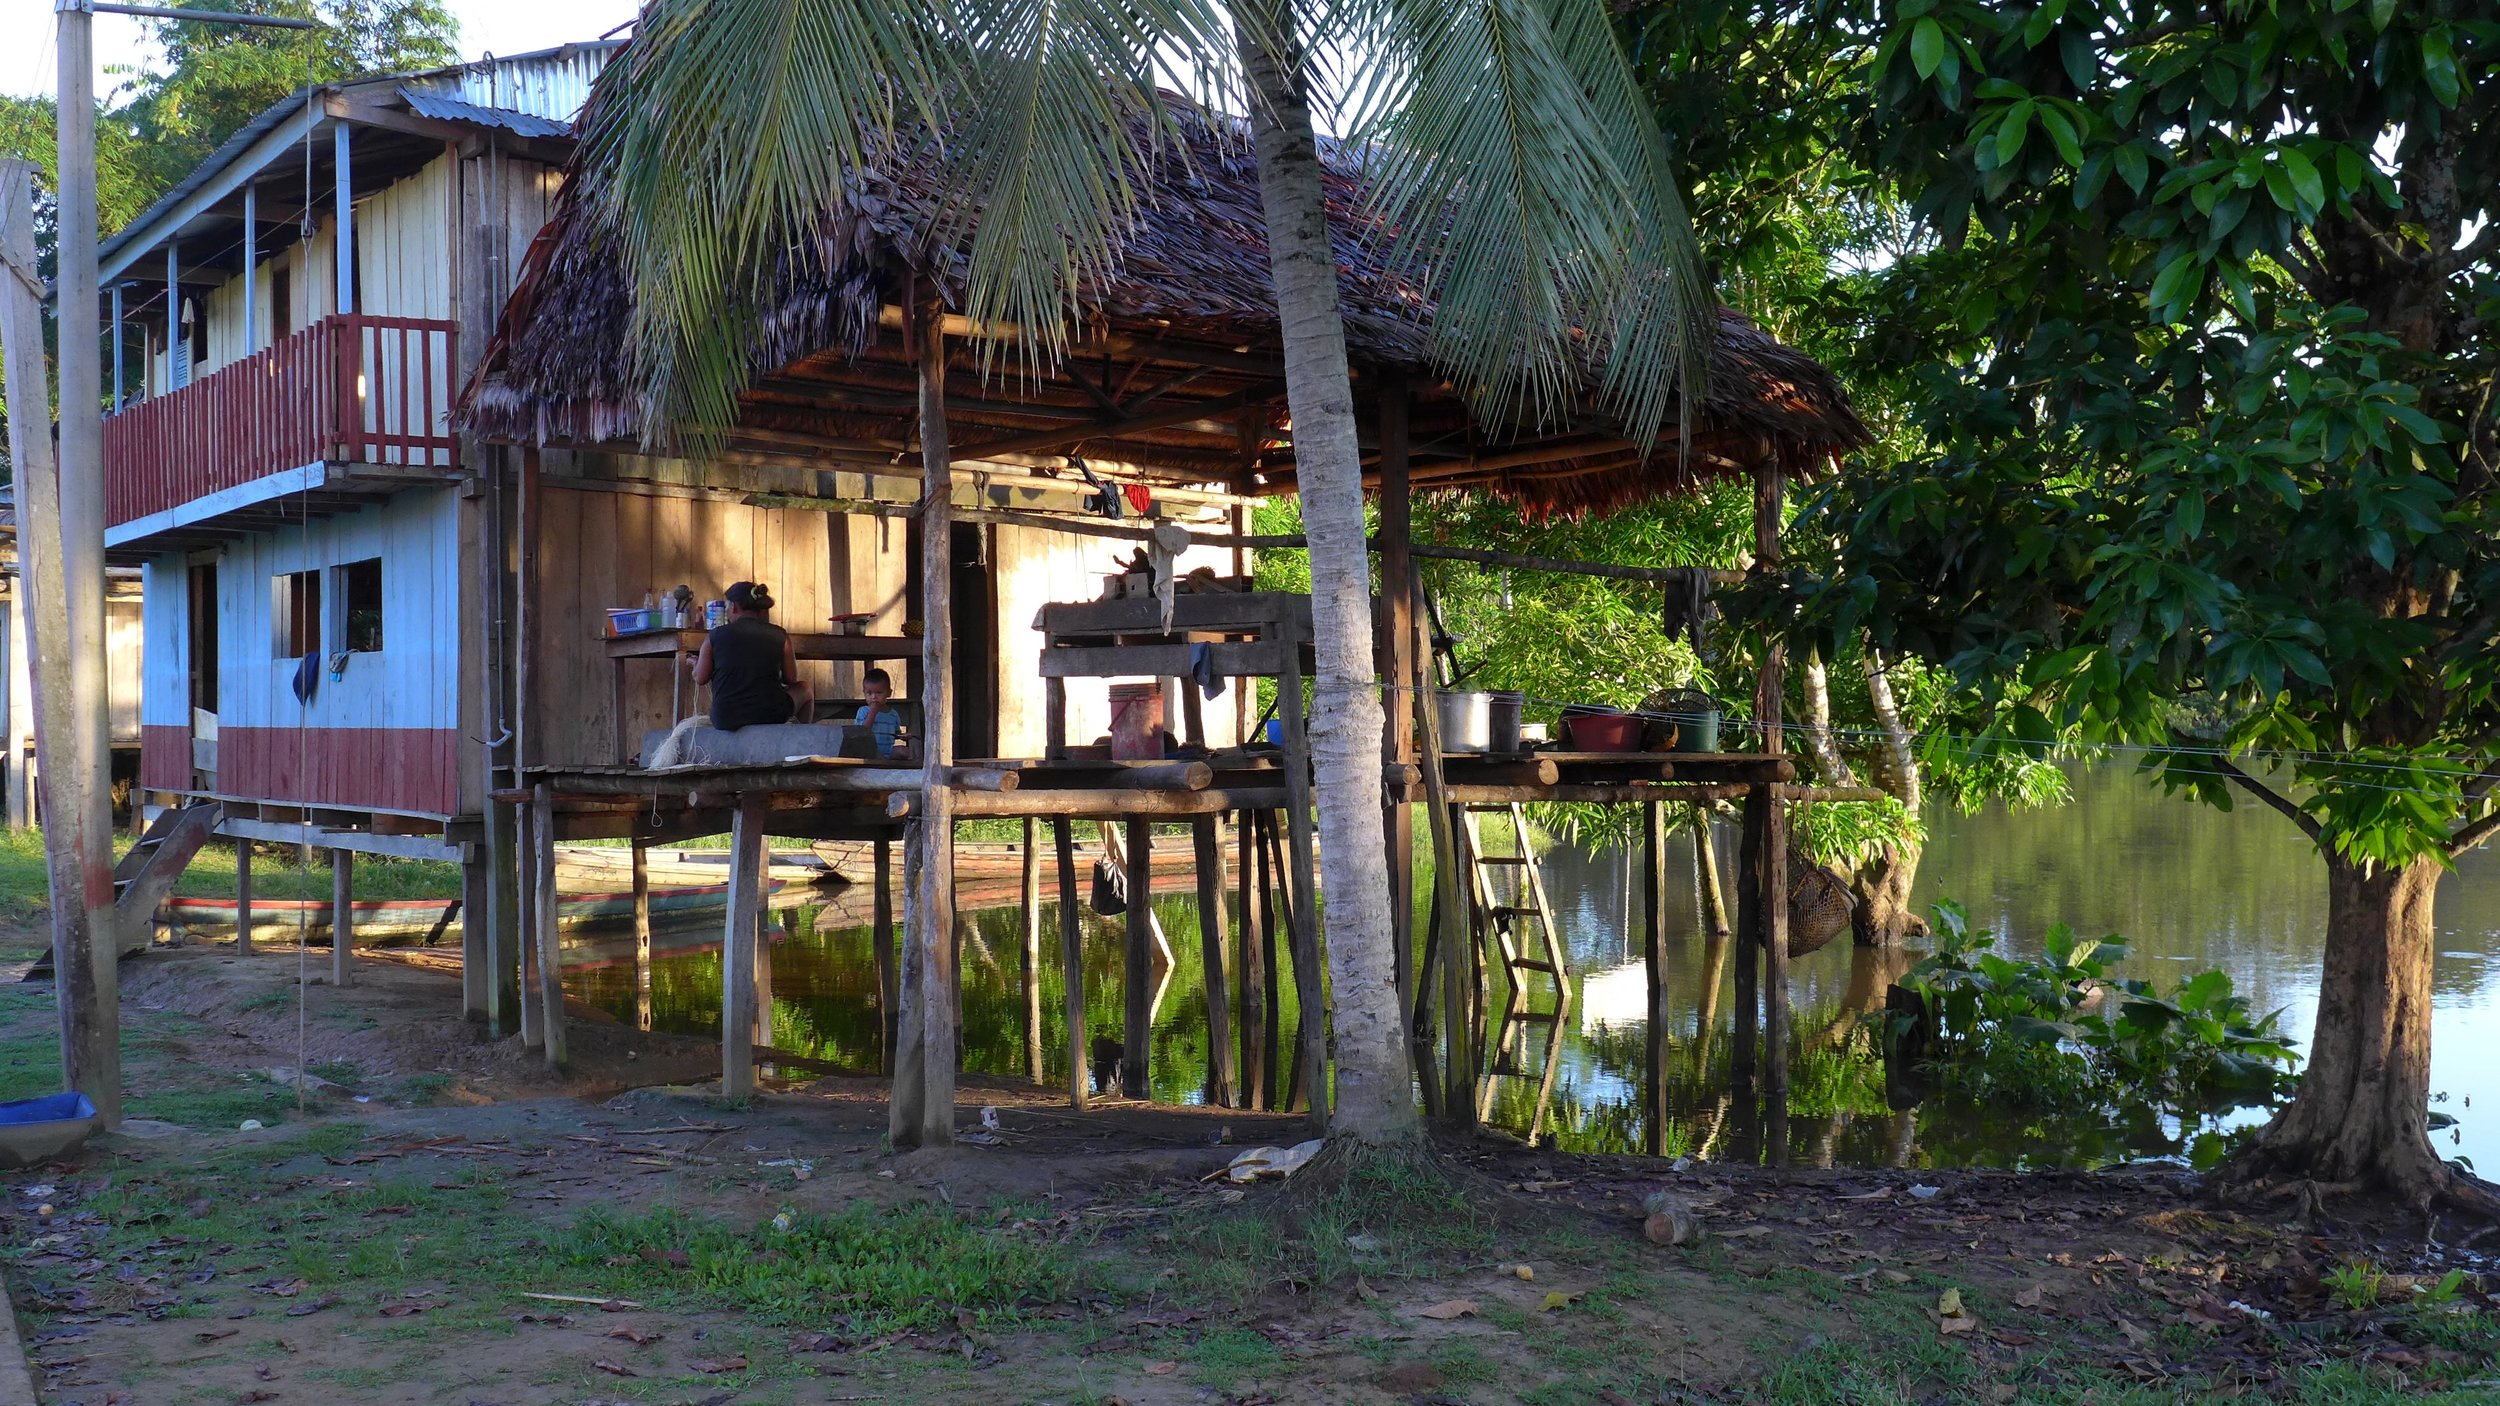 Many Amazonian dwellings only last as long as their stilts.